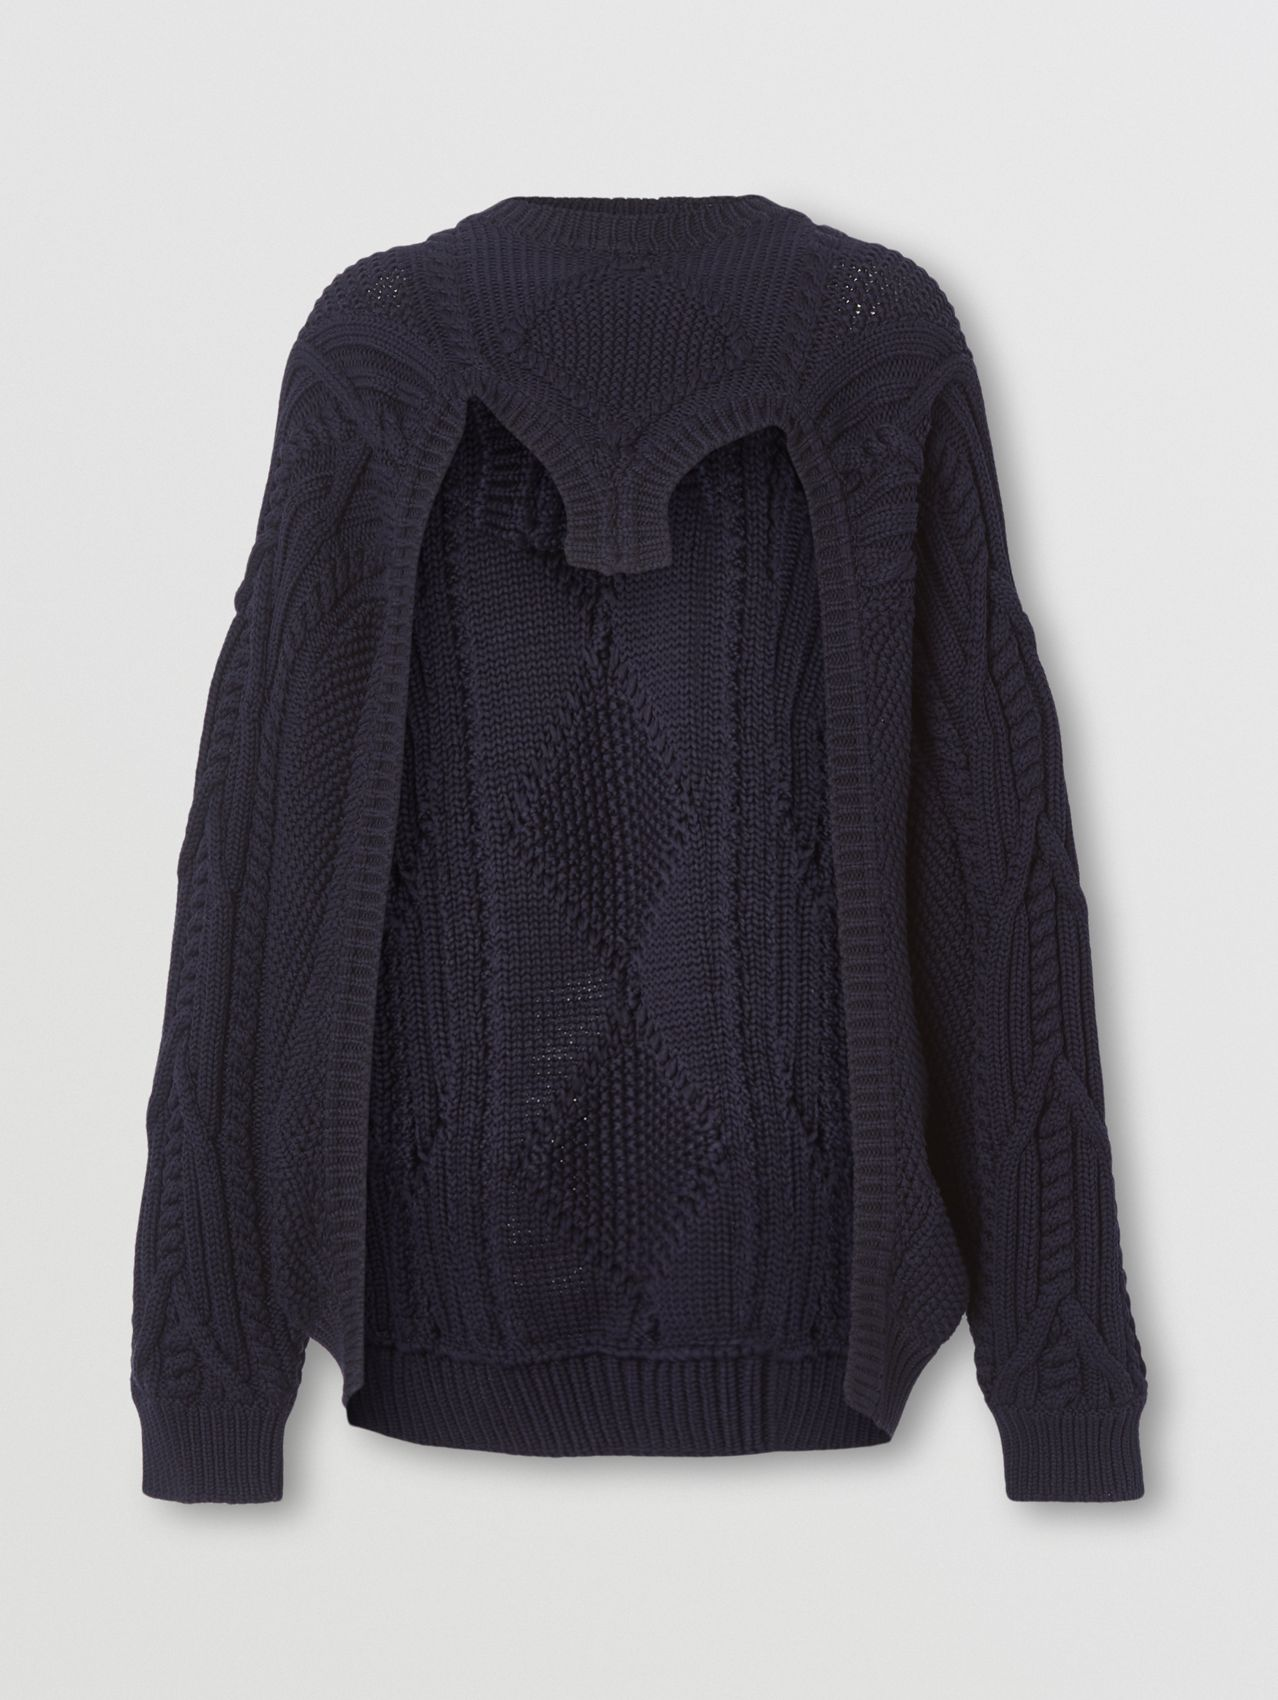 Cable Knit Technical Cotton Reconstructed Sweater in Black